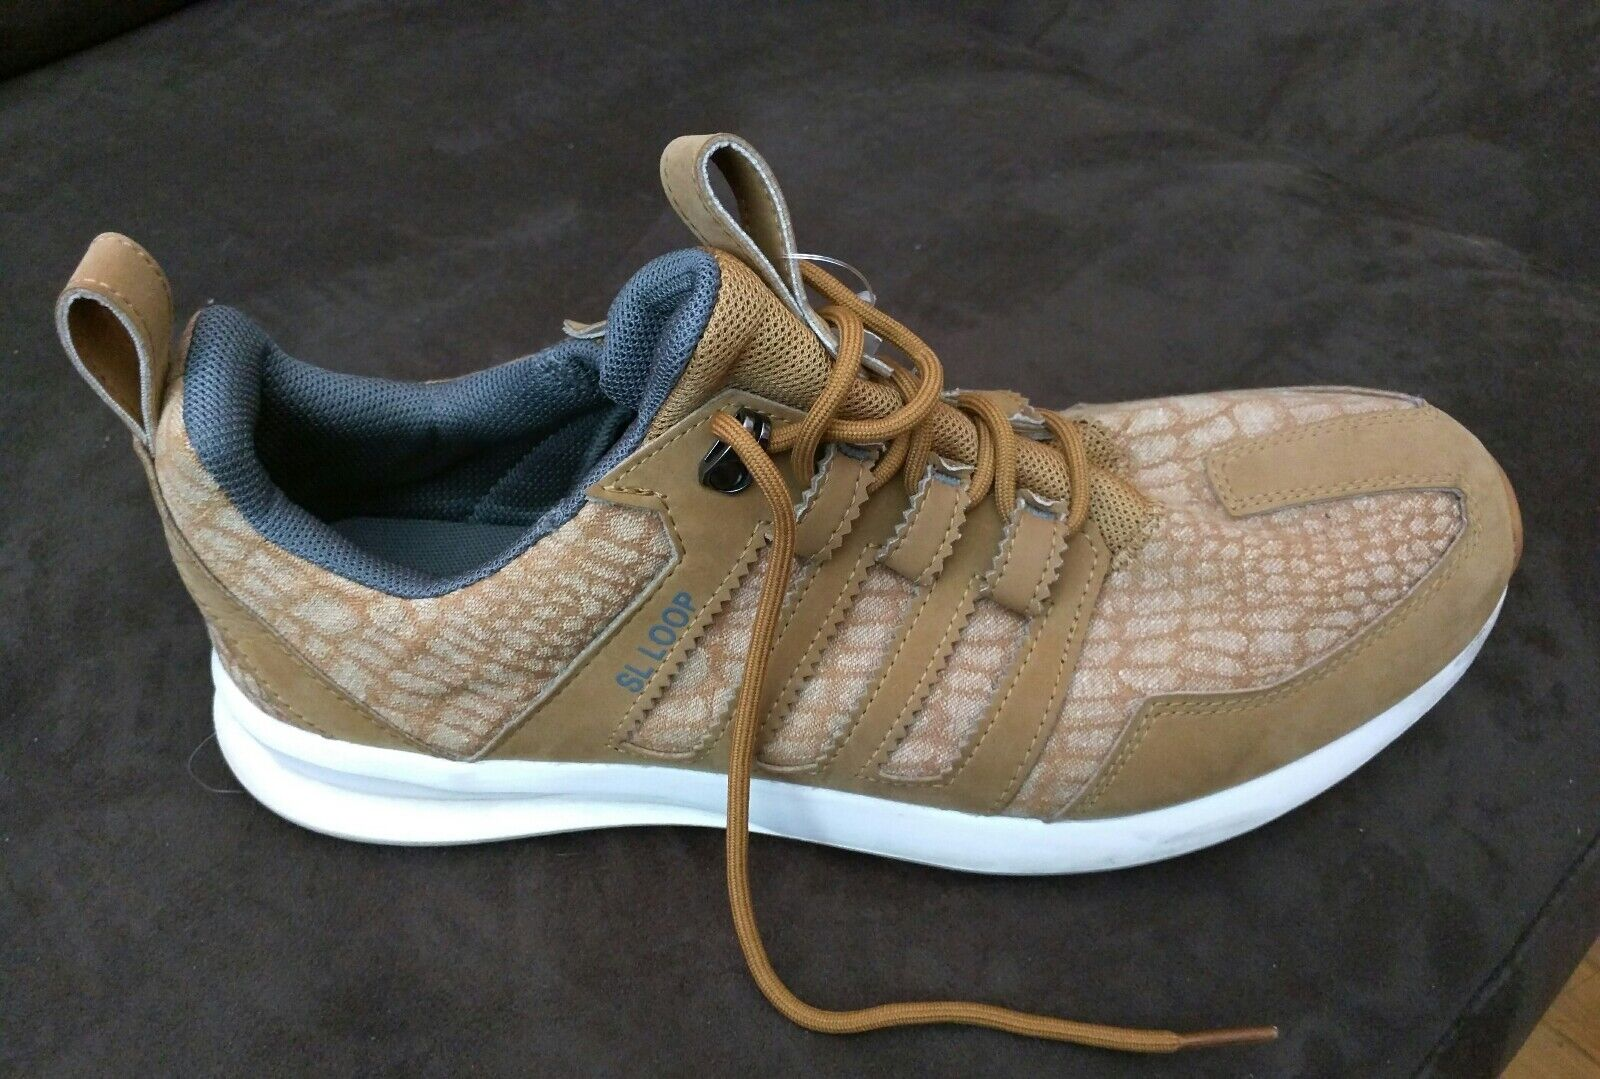 3f60d17c1 RARE adidas TAN LEATHER SHOES US 11 Sneakers Trainers LOOP SL ...